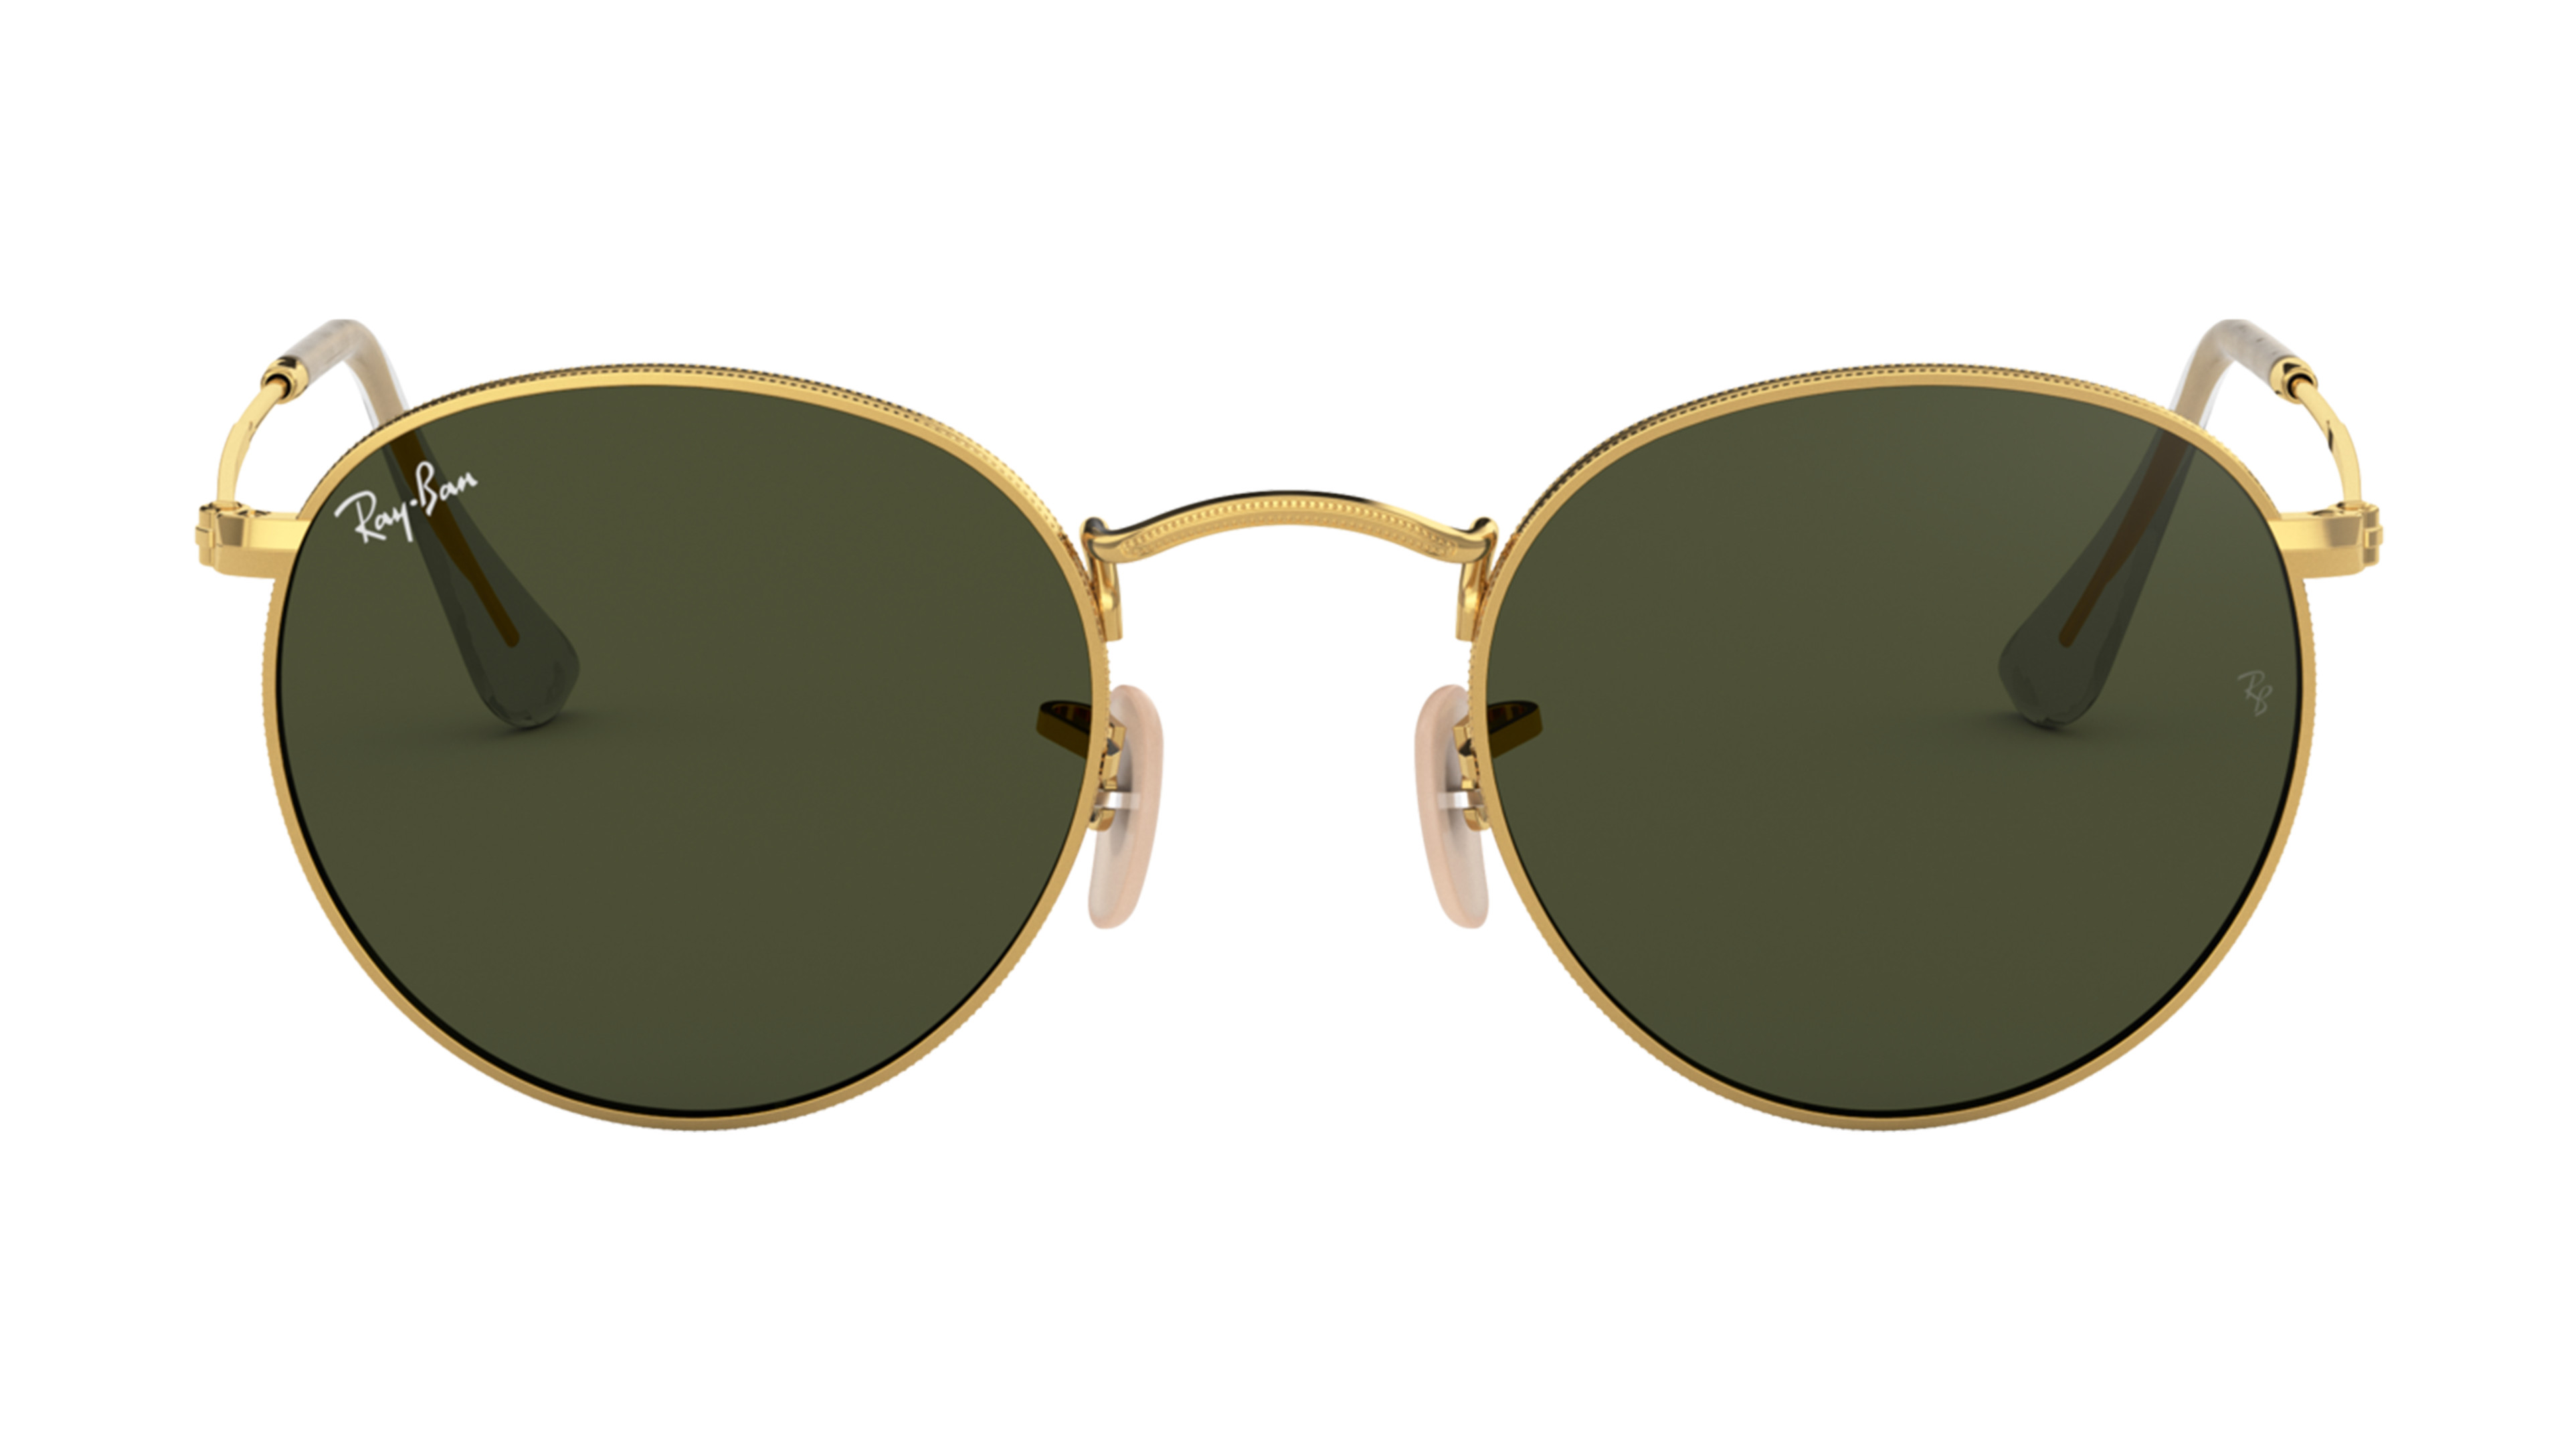 8053672666878-front-Ray-Ban-0RB3447-001